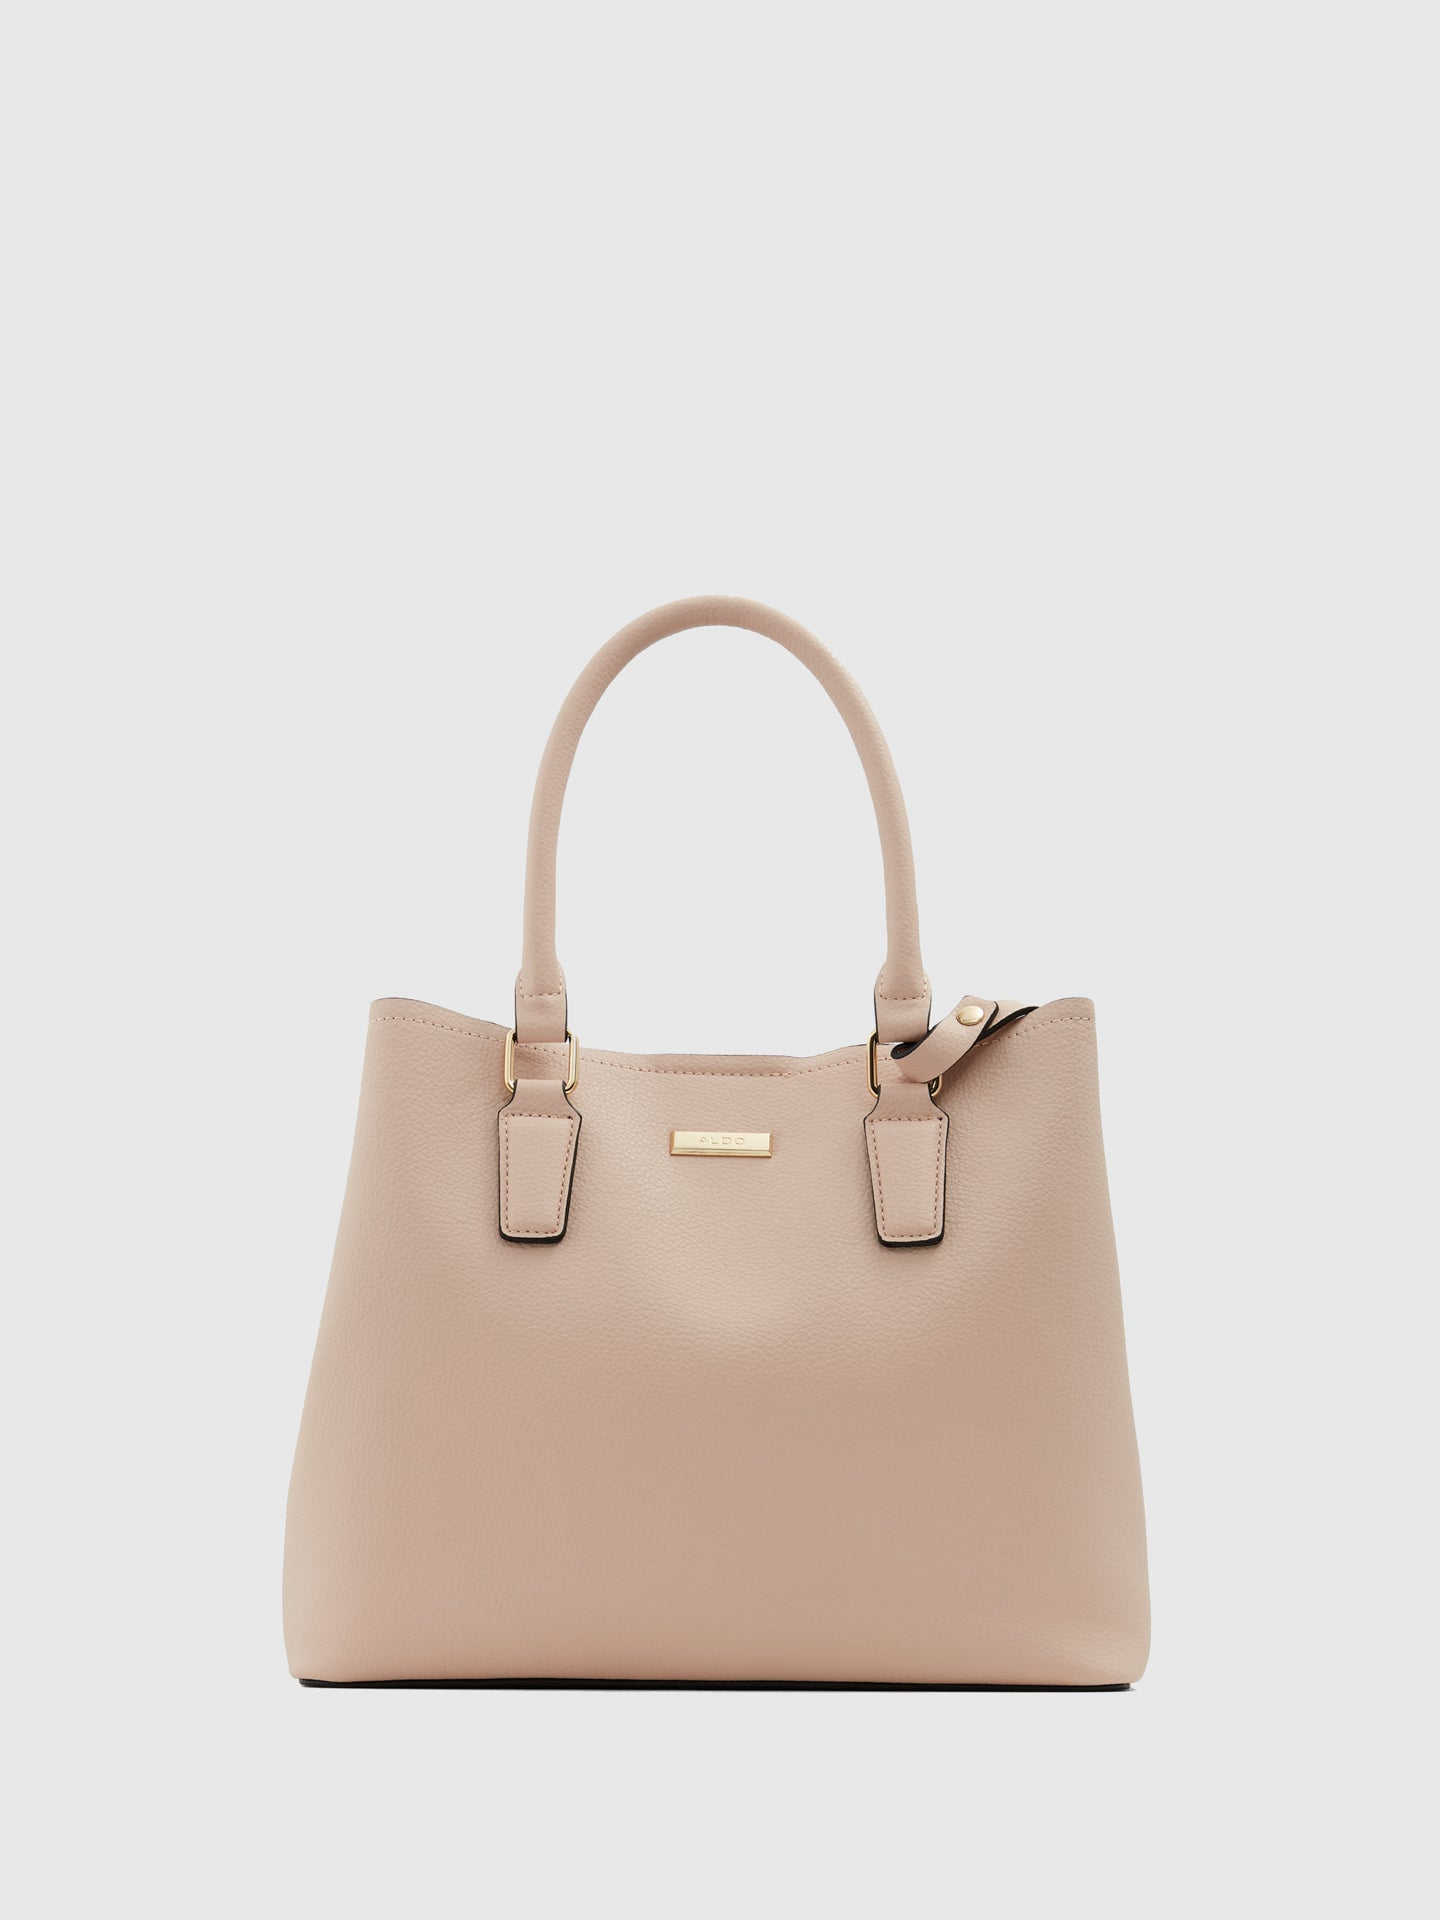 Aldo LightPink Shoulder Bag